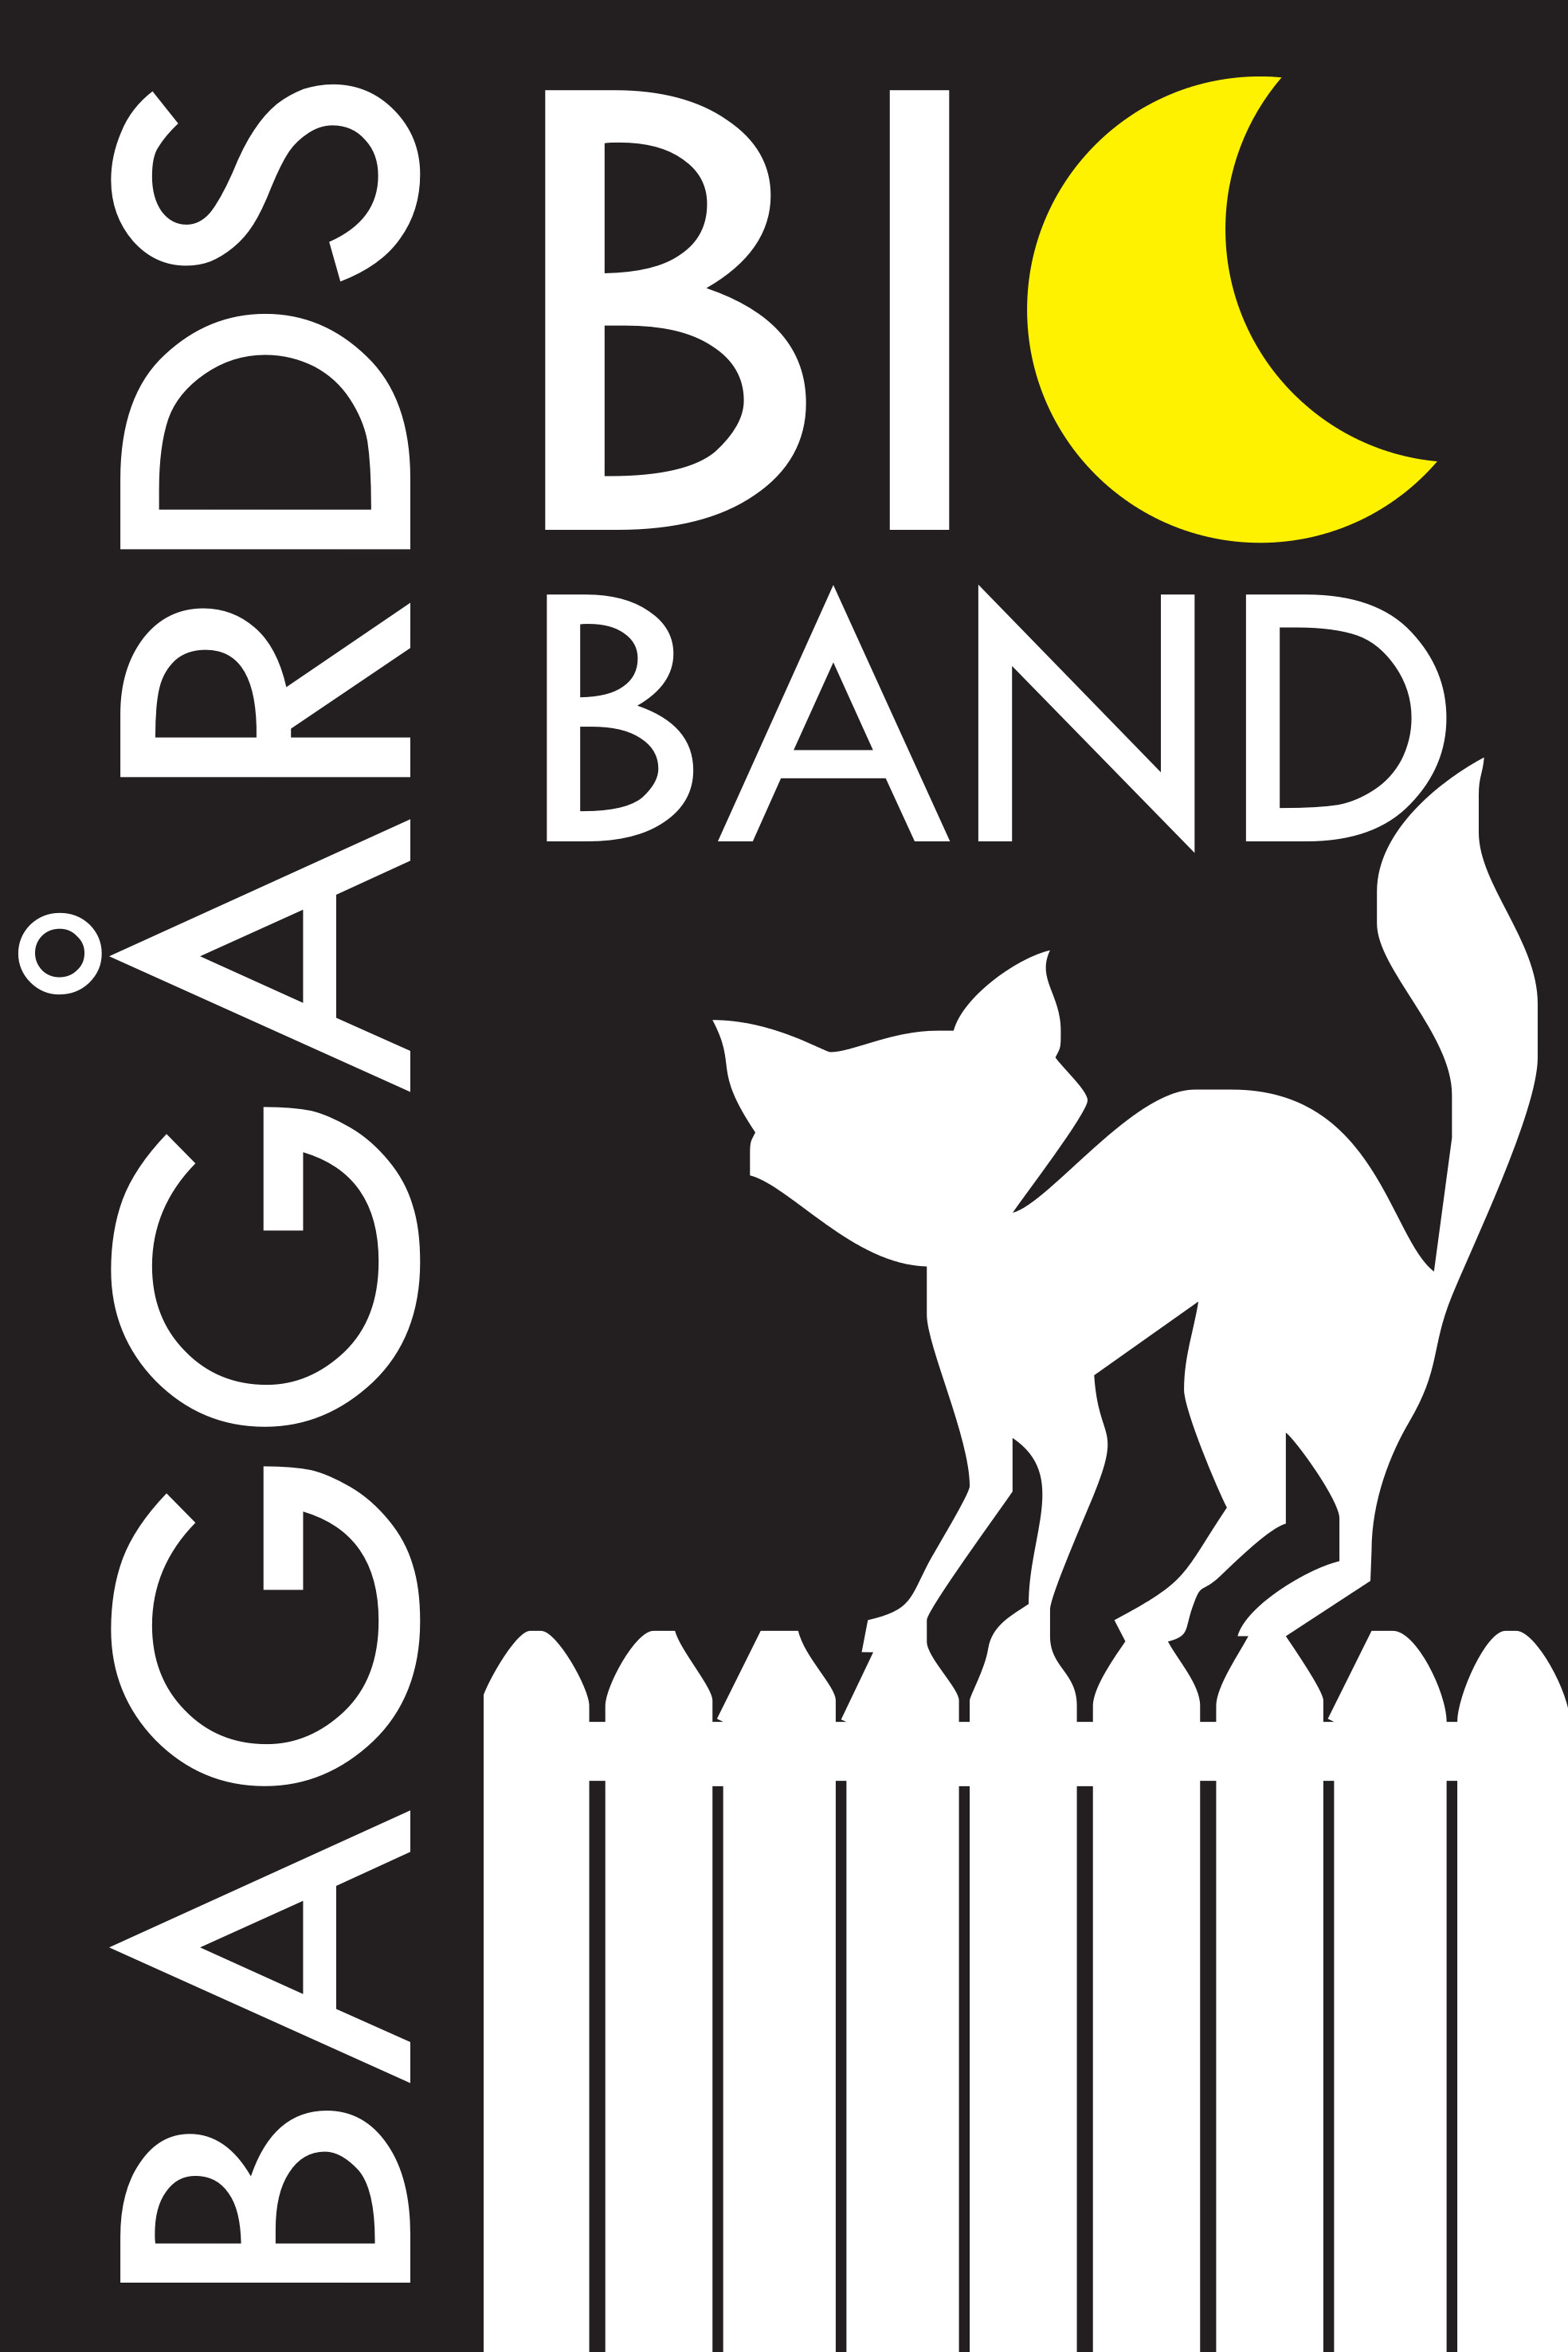 Baggårds Big Band